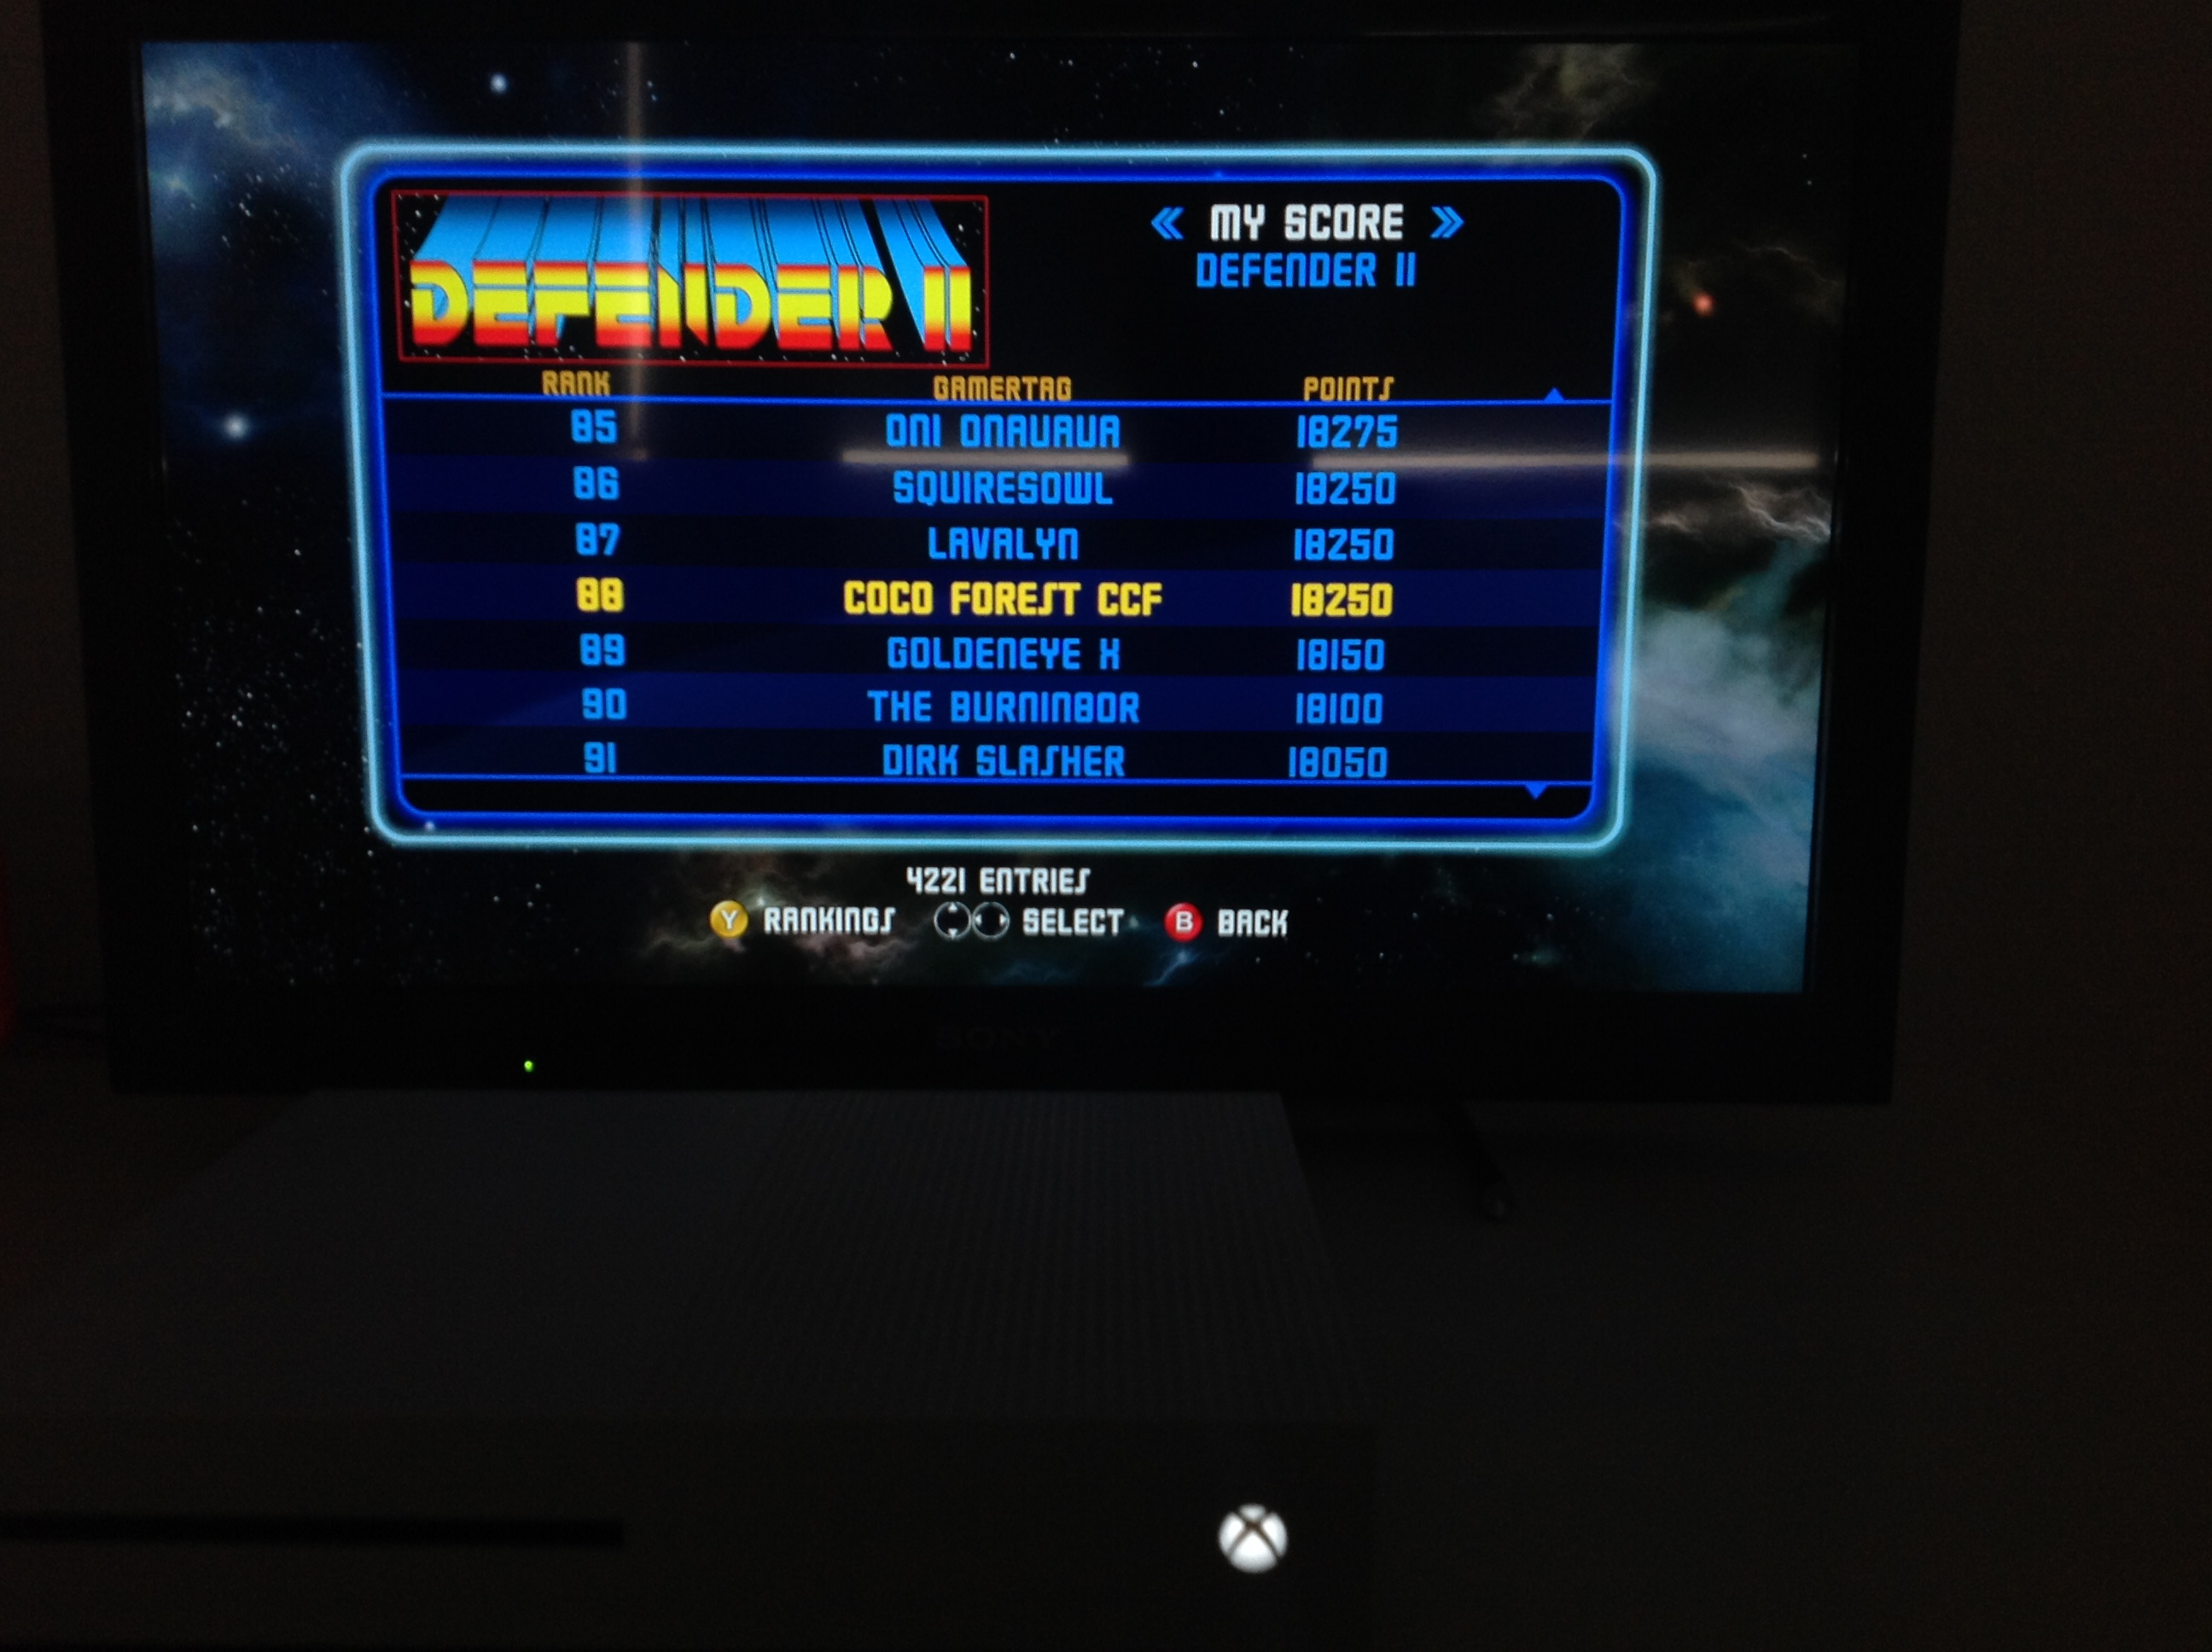 CoCoForest: Midway Arcade Origins: Defender II (Xbox 360) 18,250 points on 2019-05-24 12:38:56